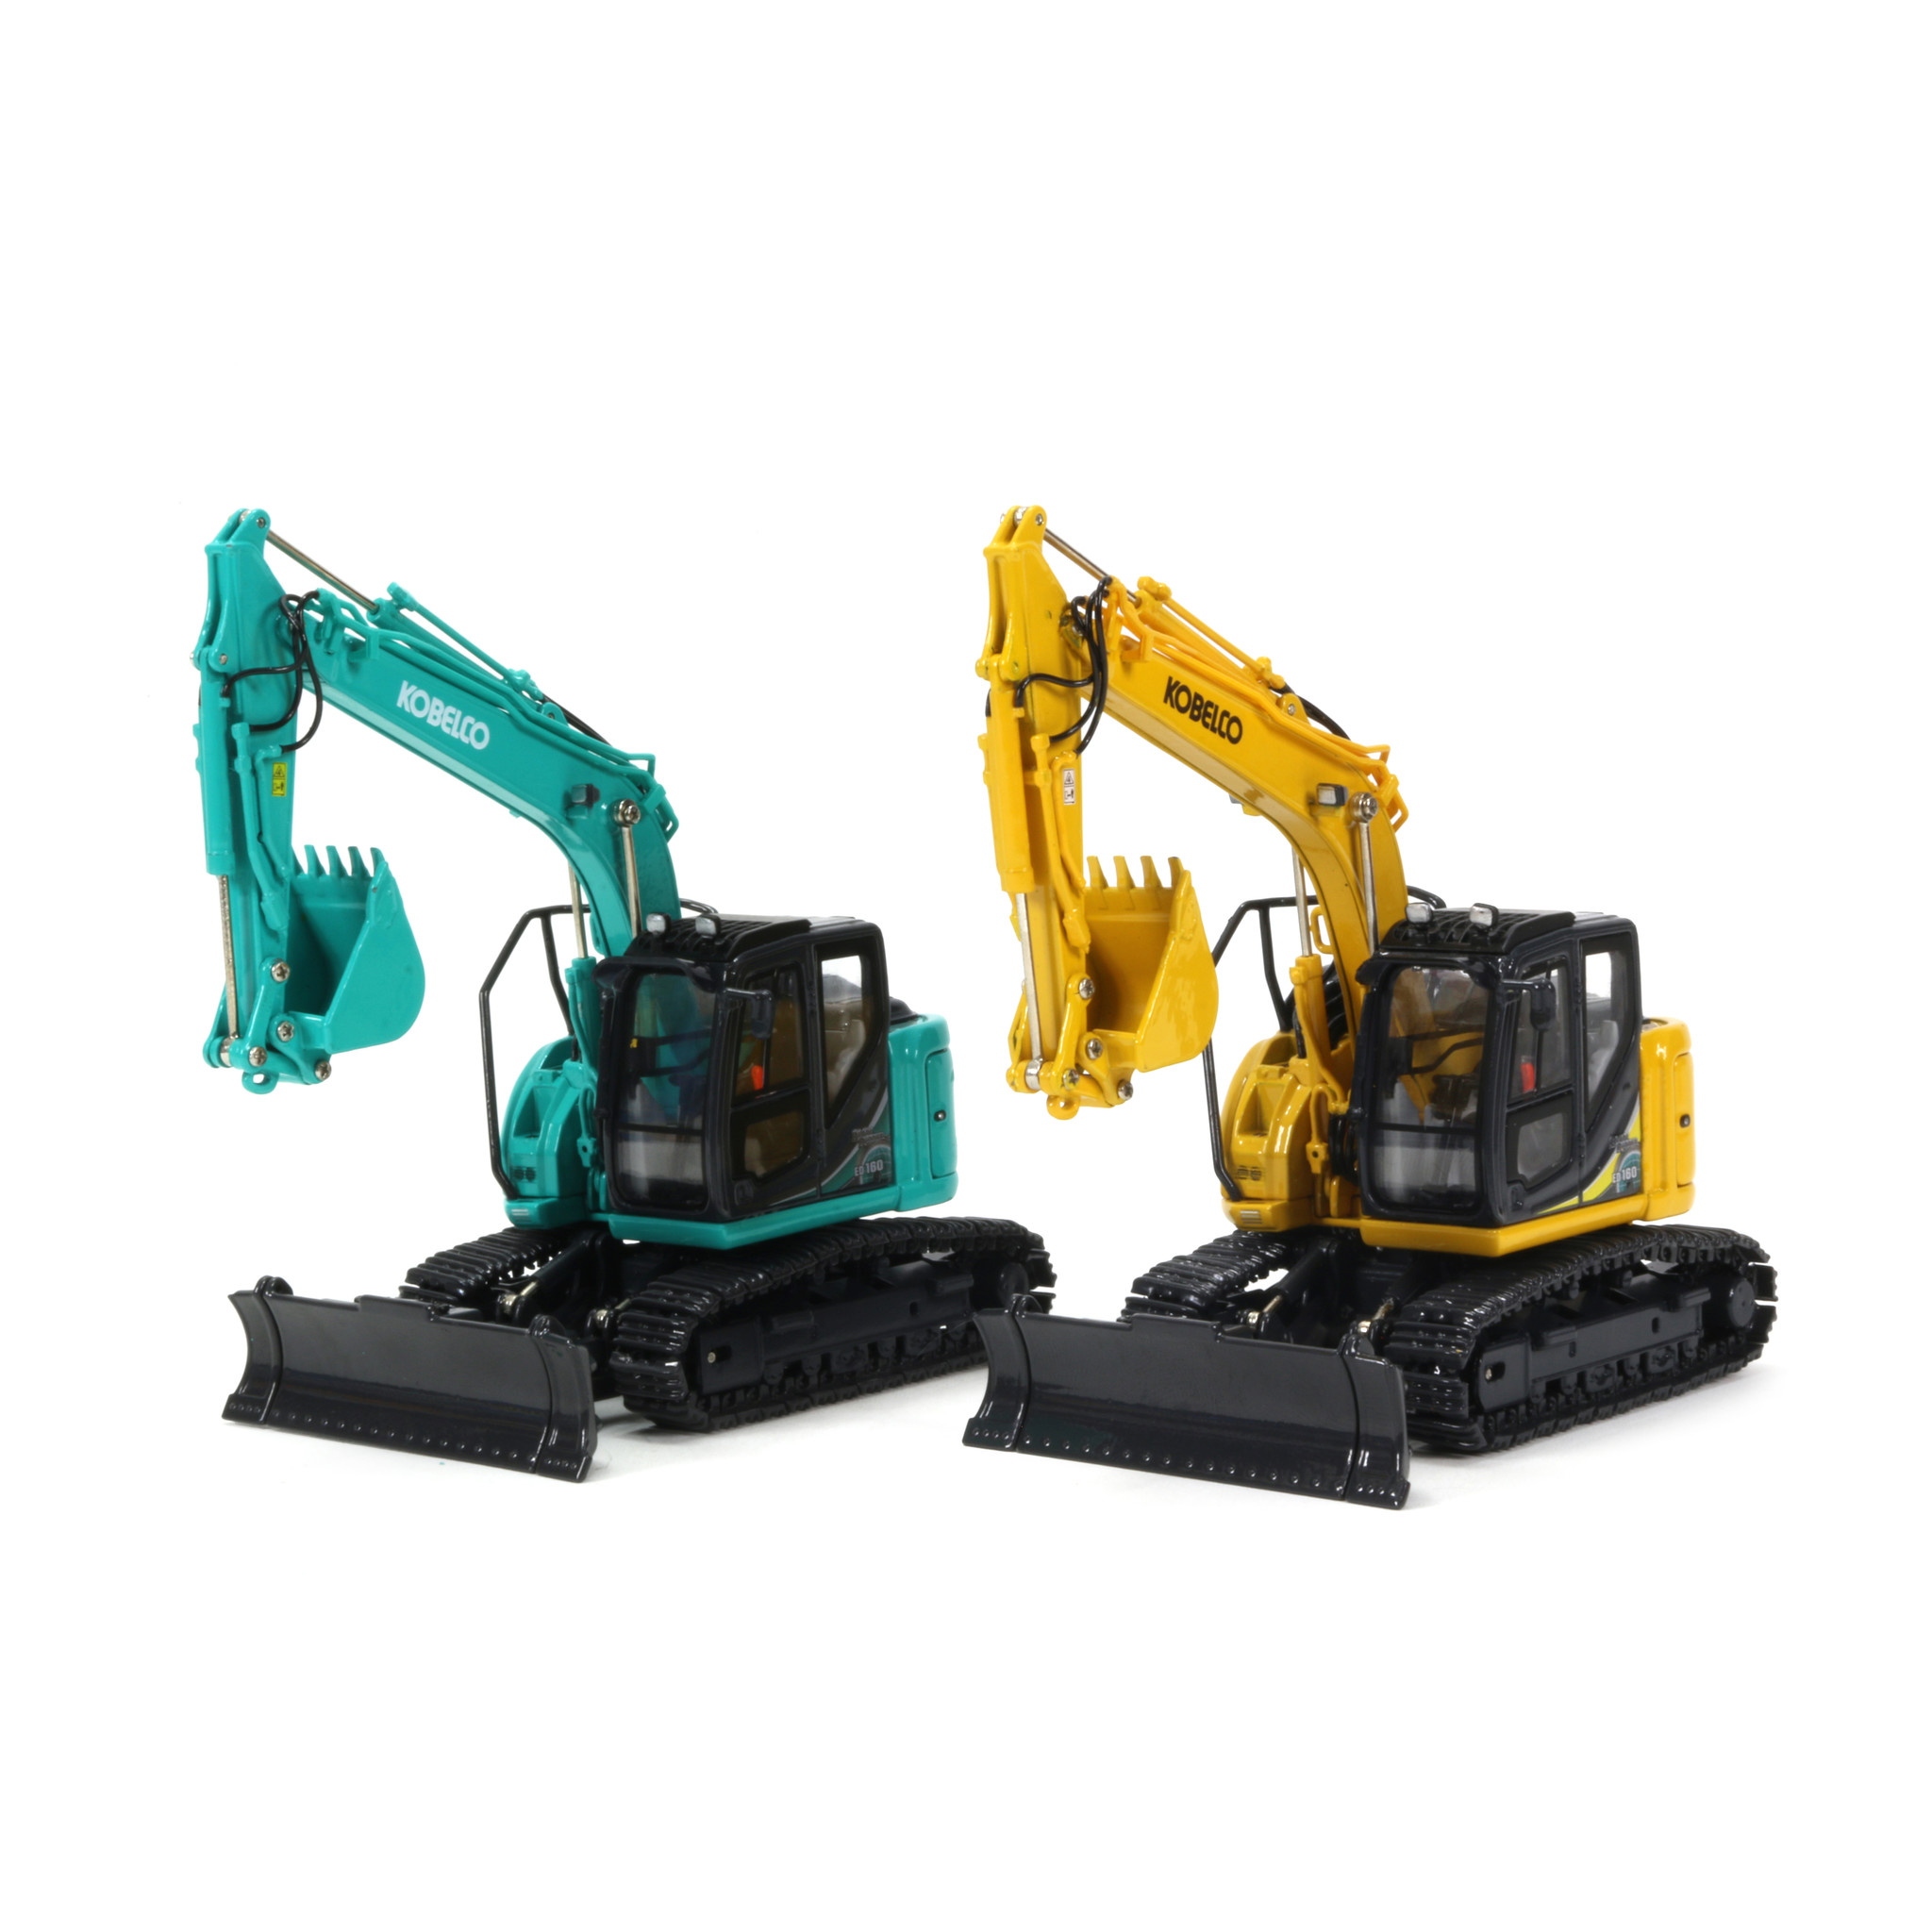 GENUINE KOBELCO SCALE MODELS